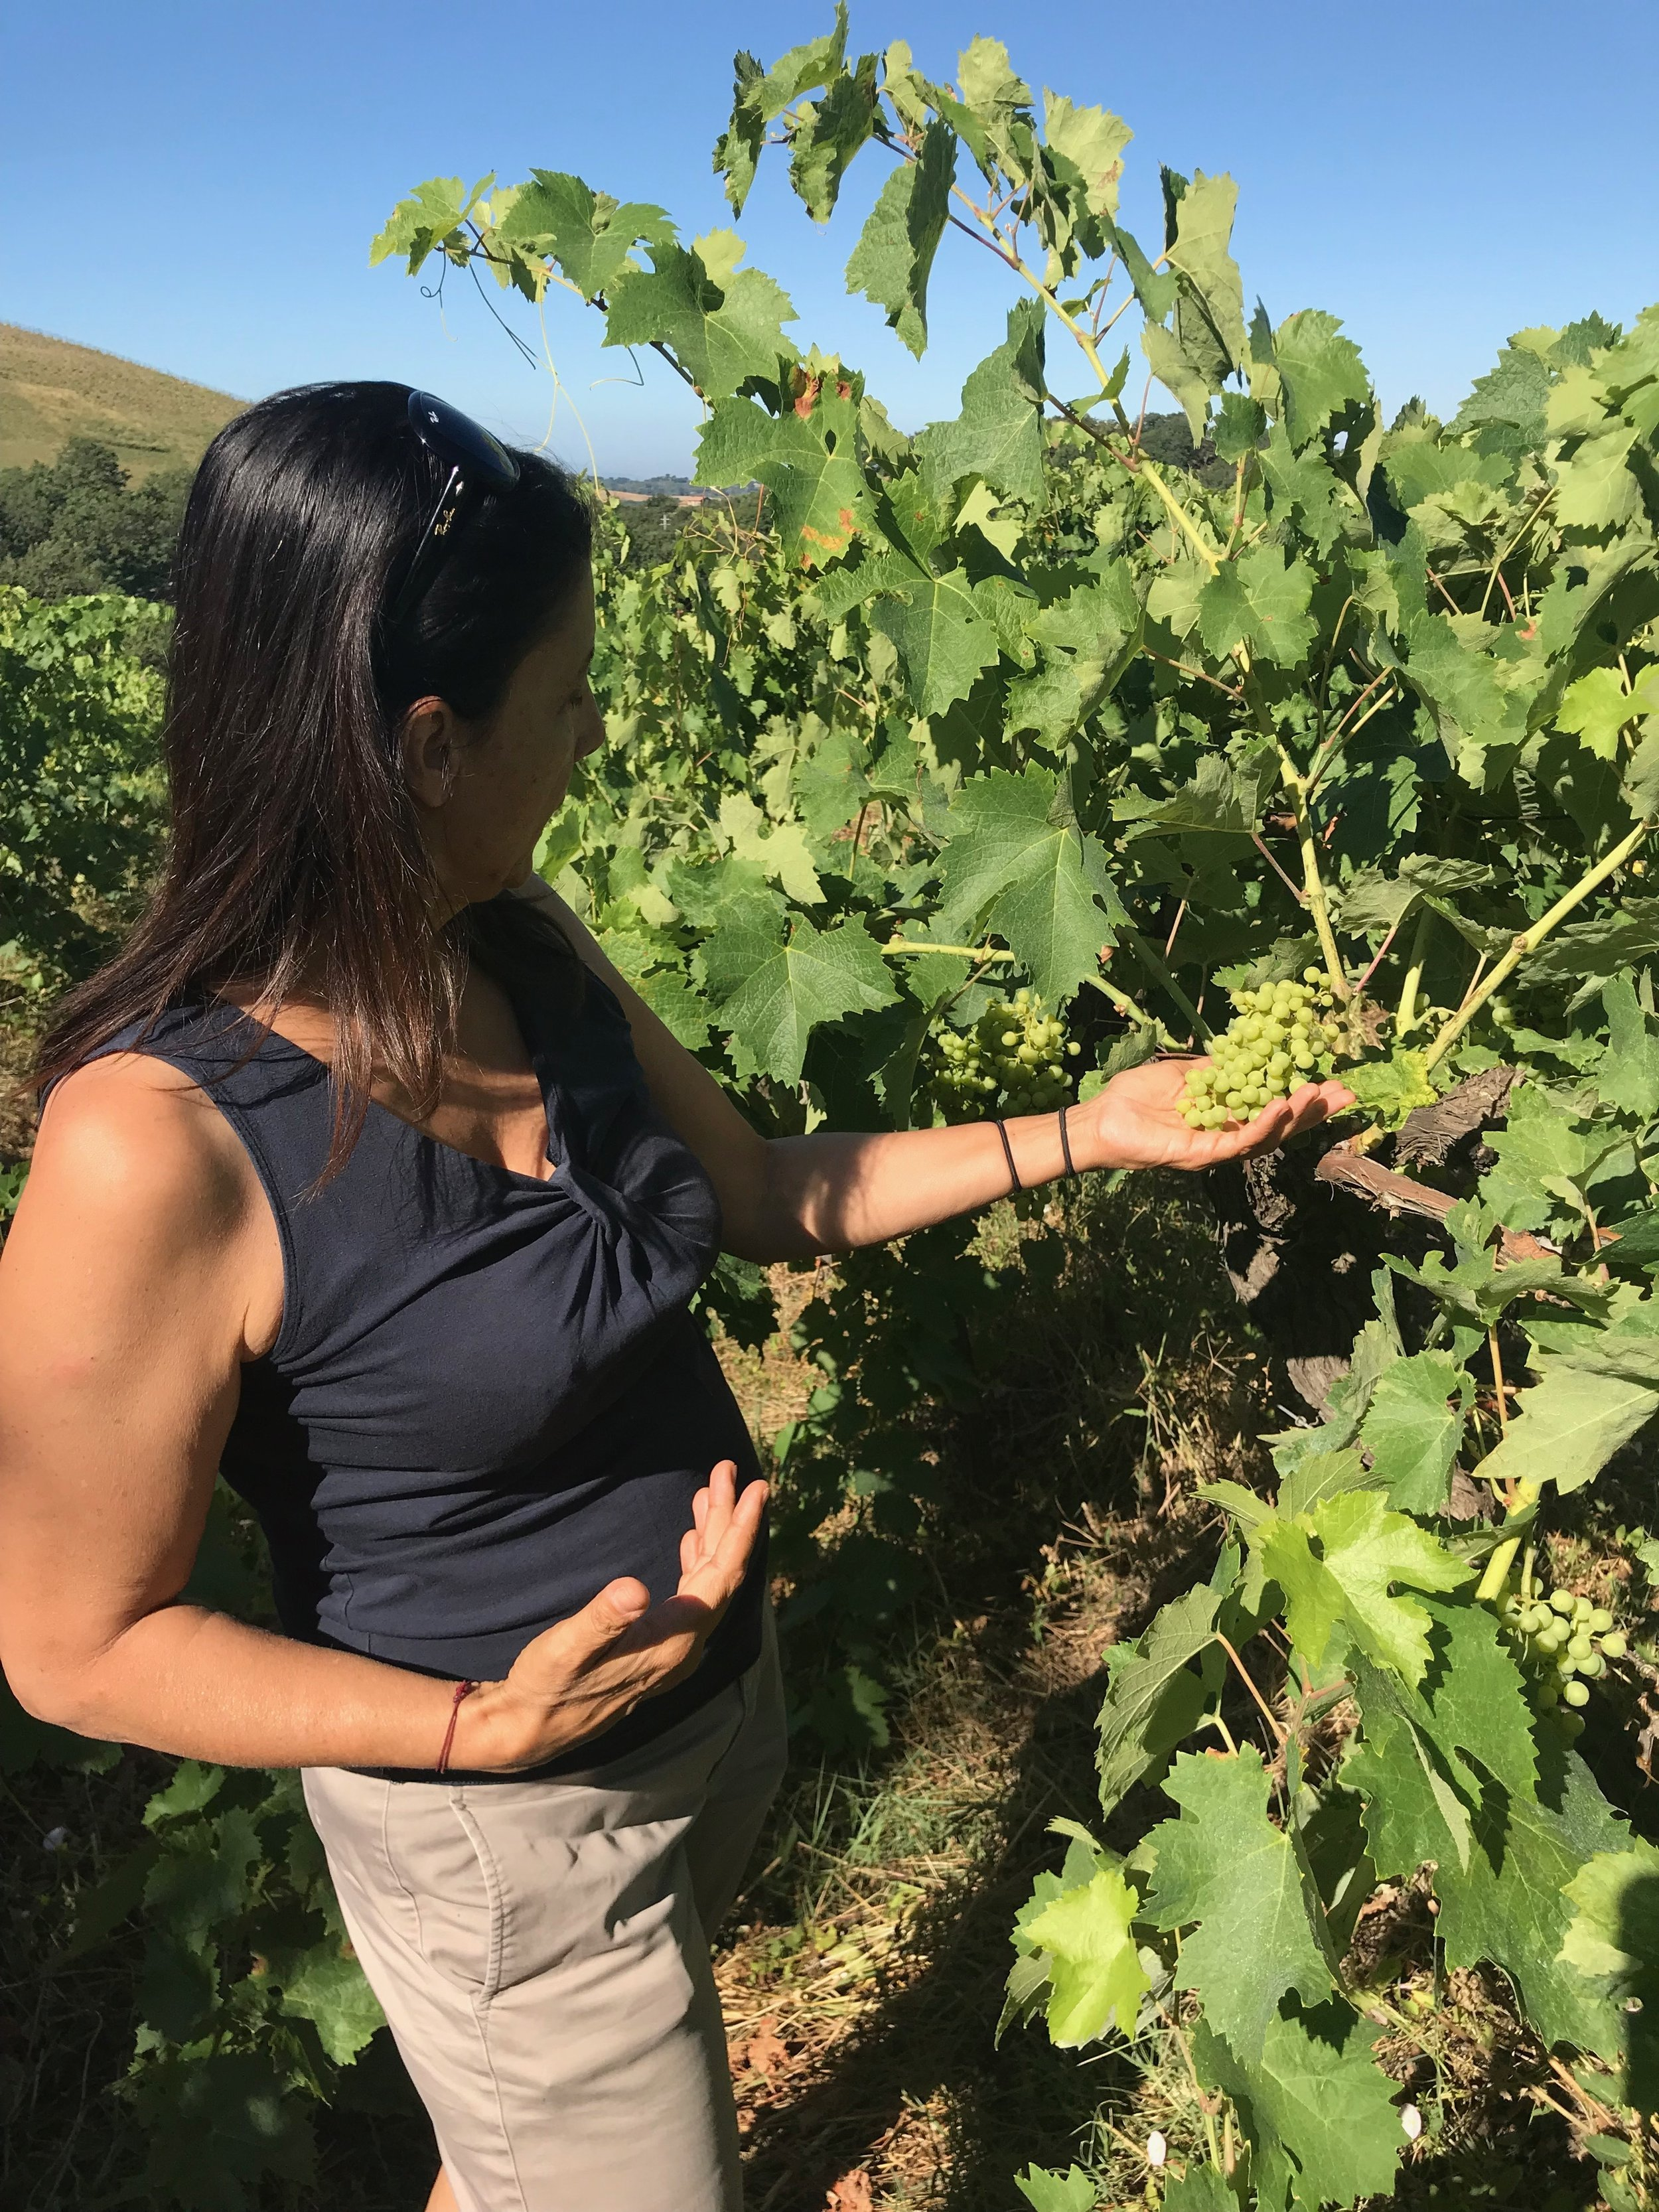 La Maliosa goes back to its roots of Maremma Italy making organic and biodyanmic wines with old native varietals.